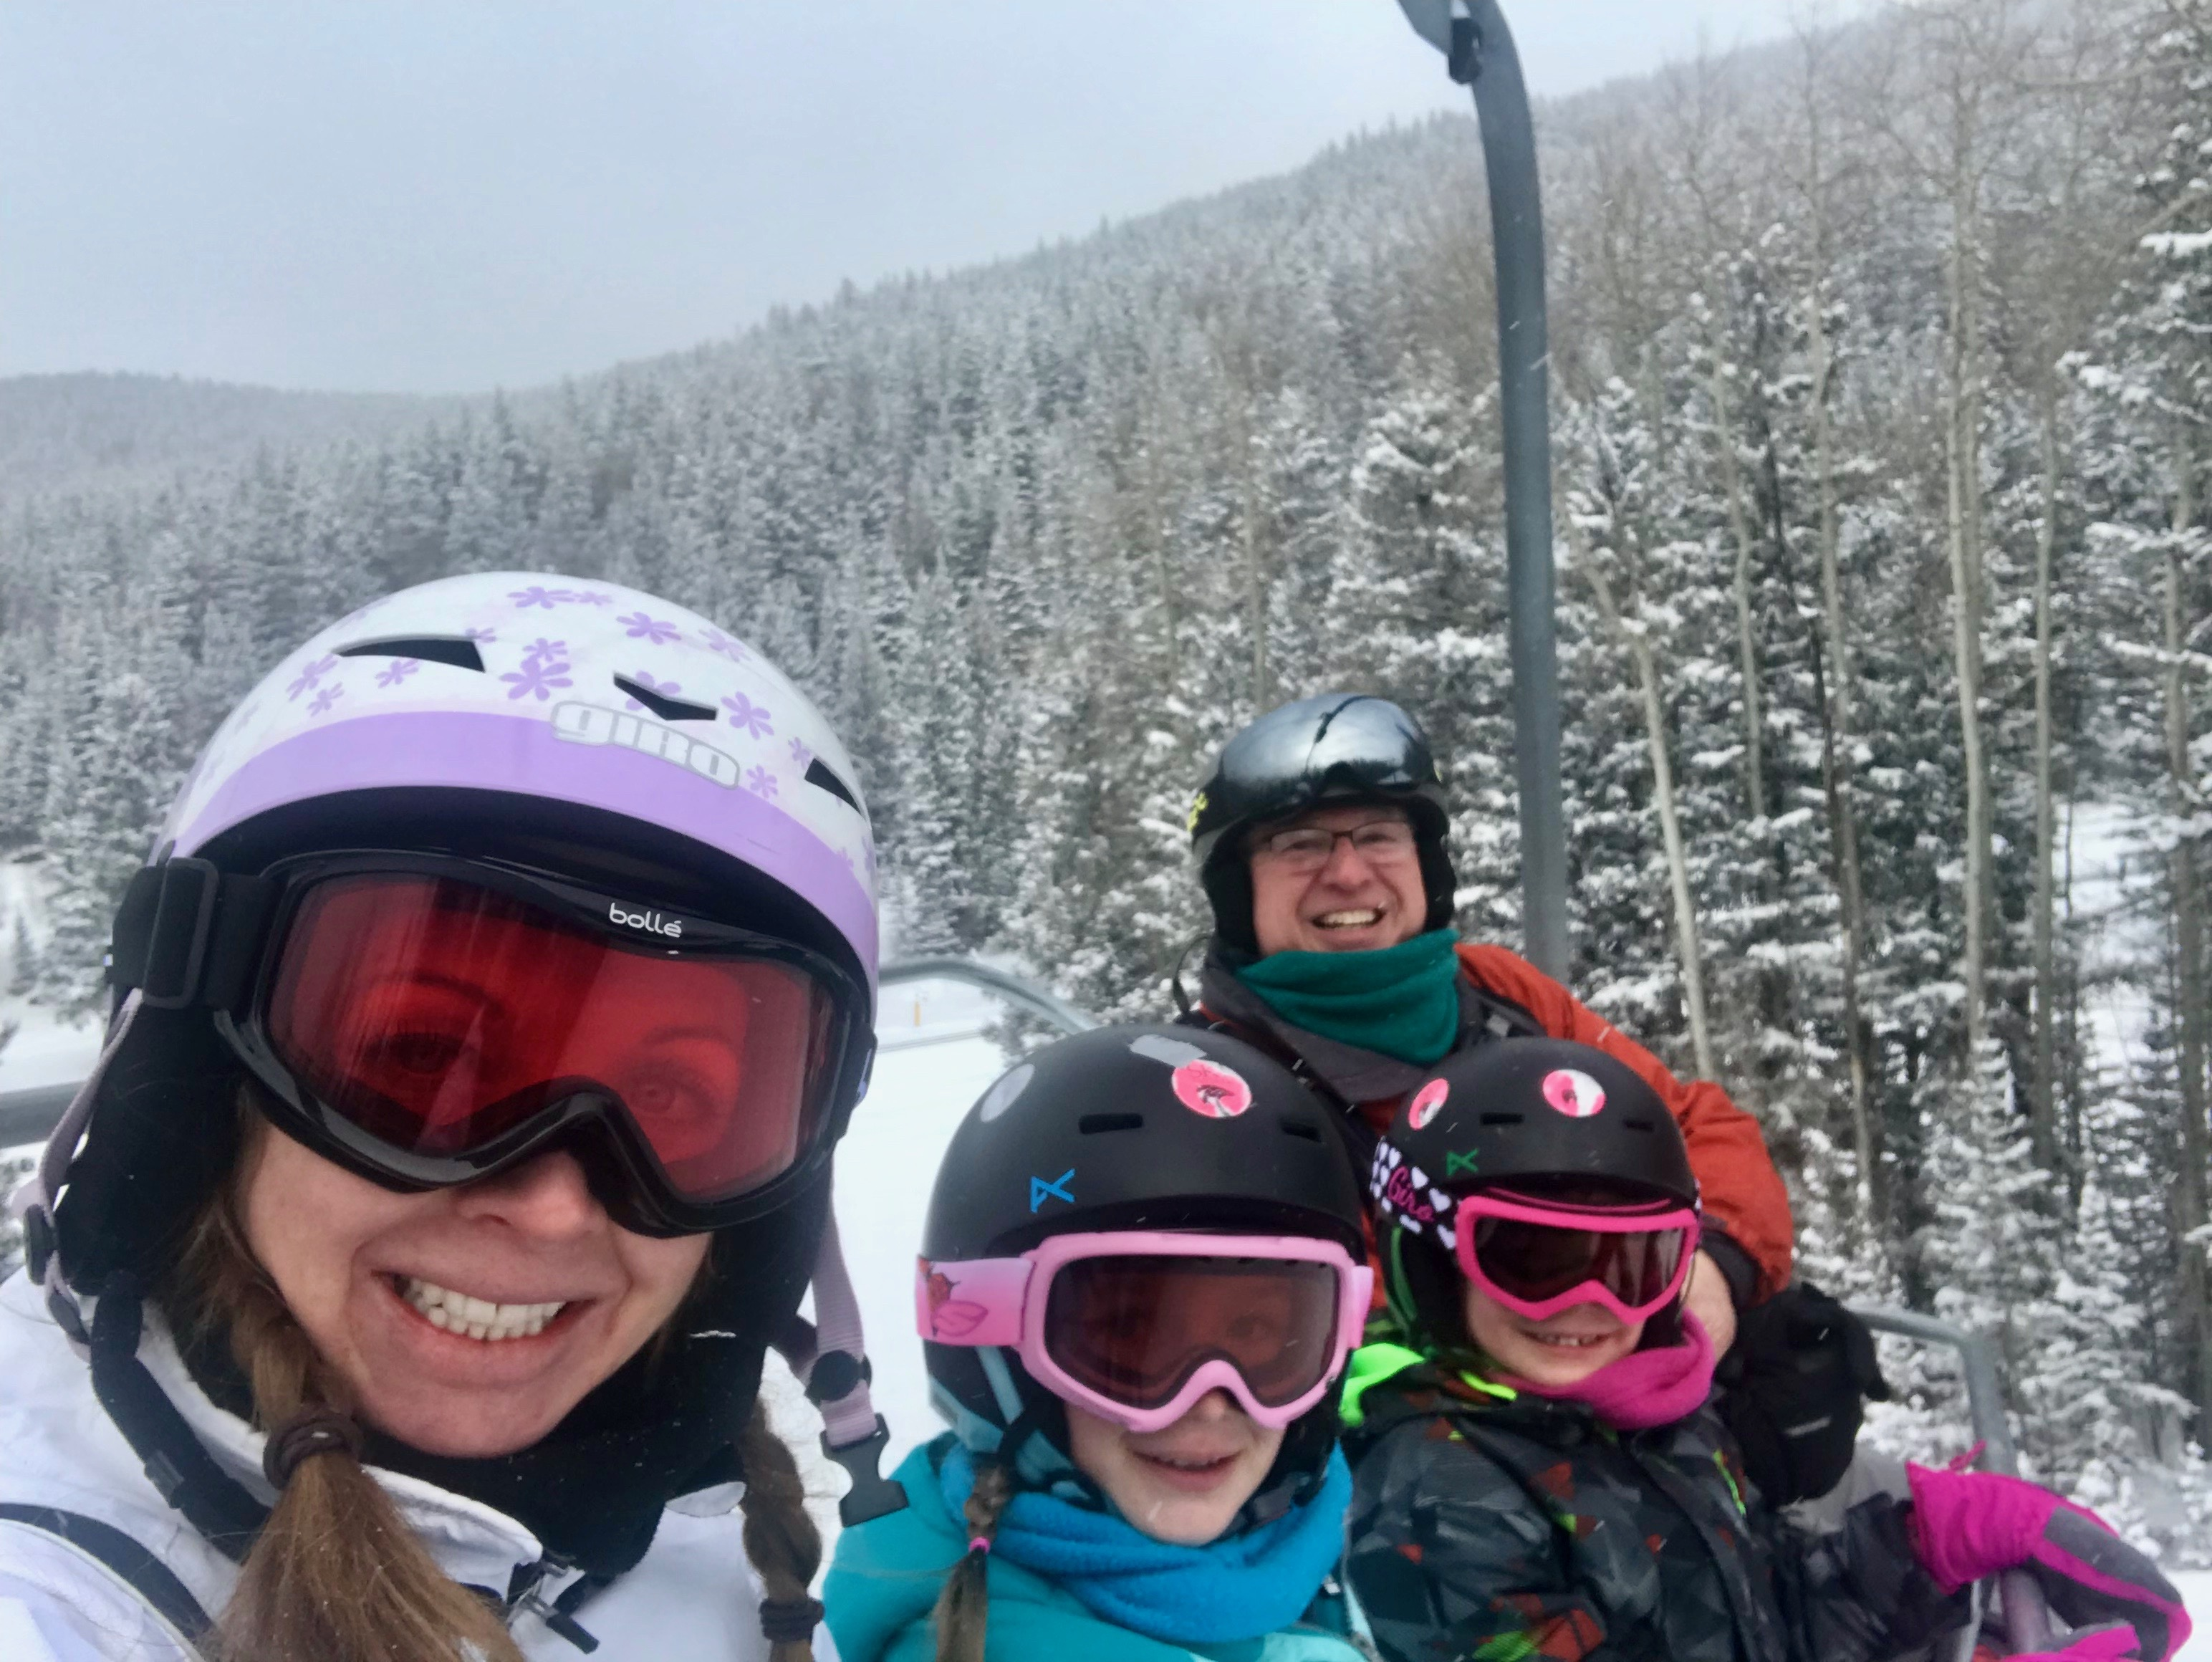 FileMaker Pro Gurus is Back – We Celebrated by Skiing!